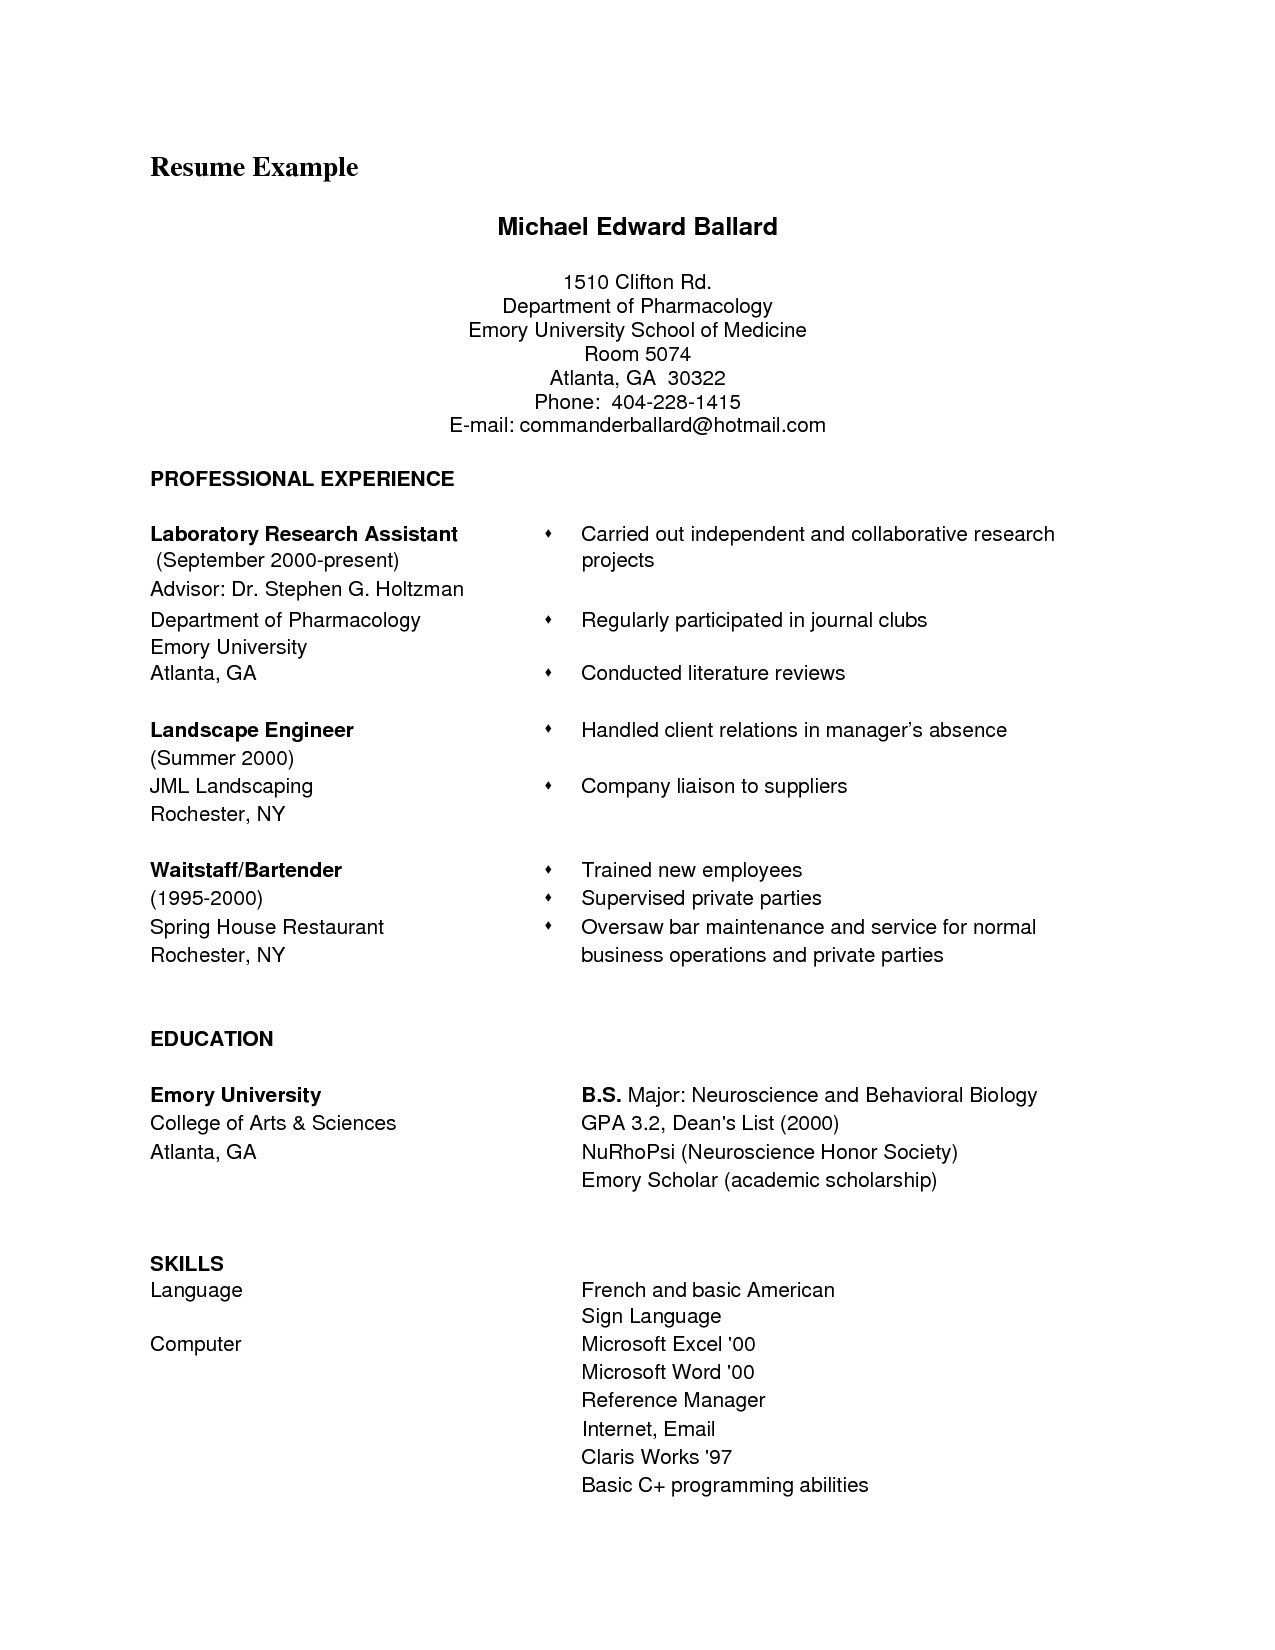 Resume for Scholarship Template - Classic Resume Templates ¢Ë†Å¡ Powerpoint Templates for Biology New